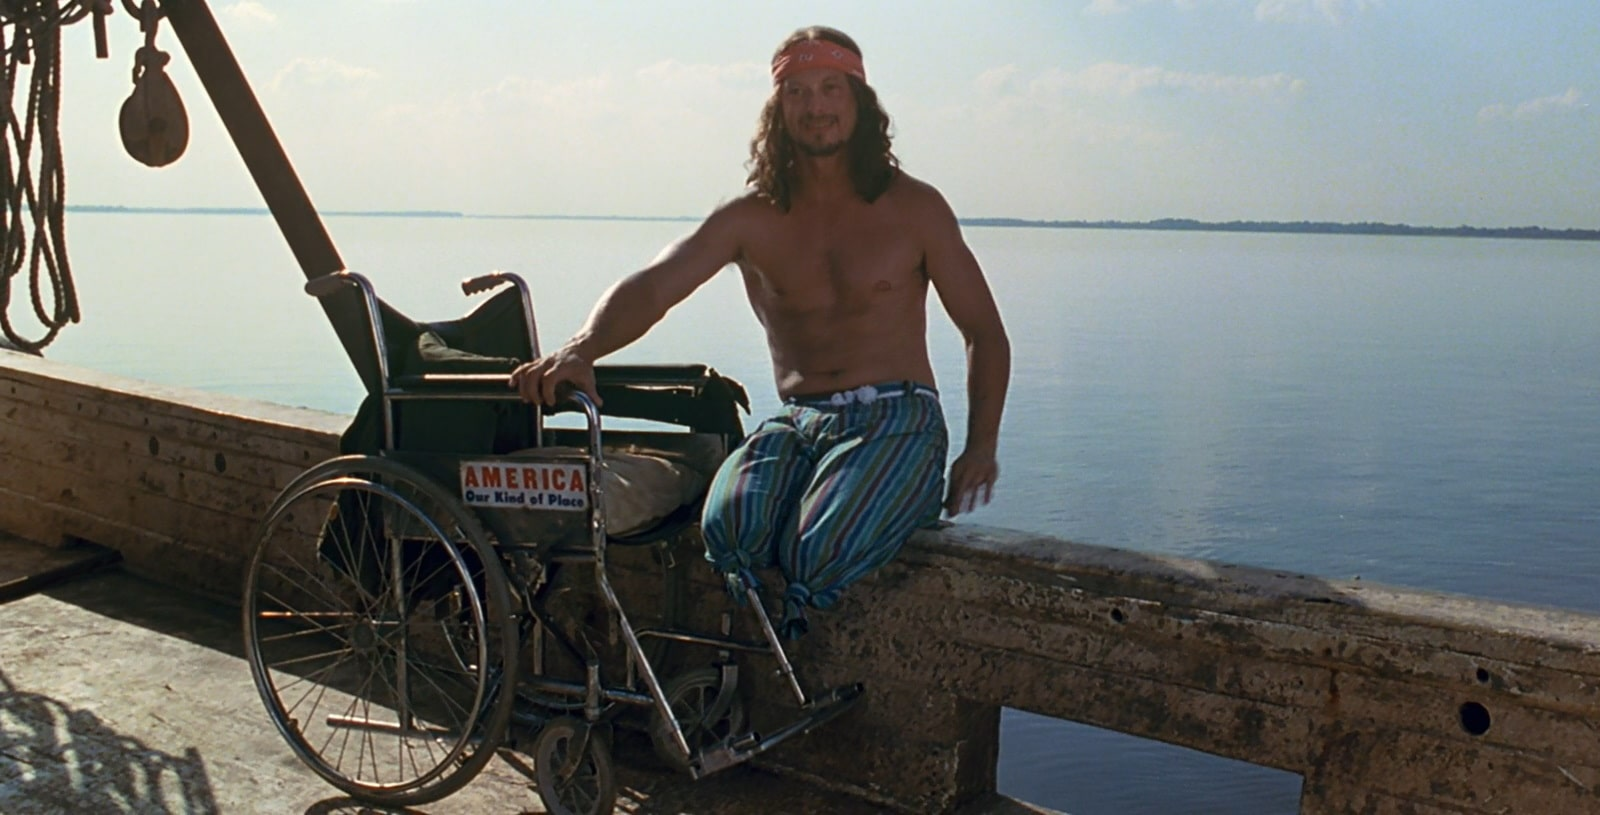 Lieutenant Dan and his settlement with God